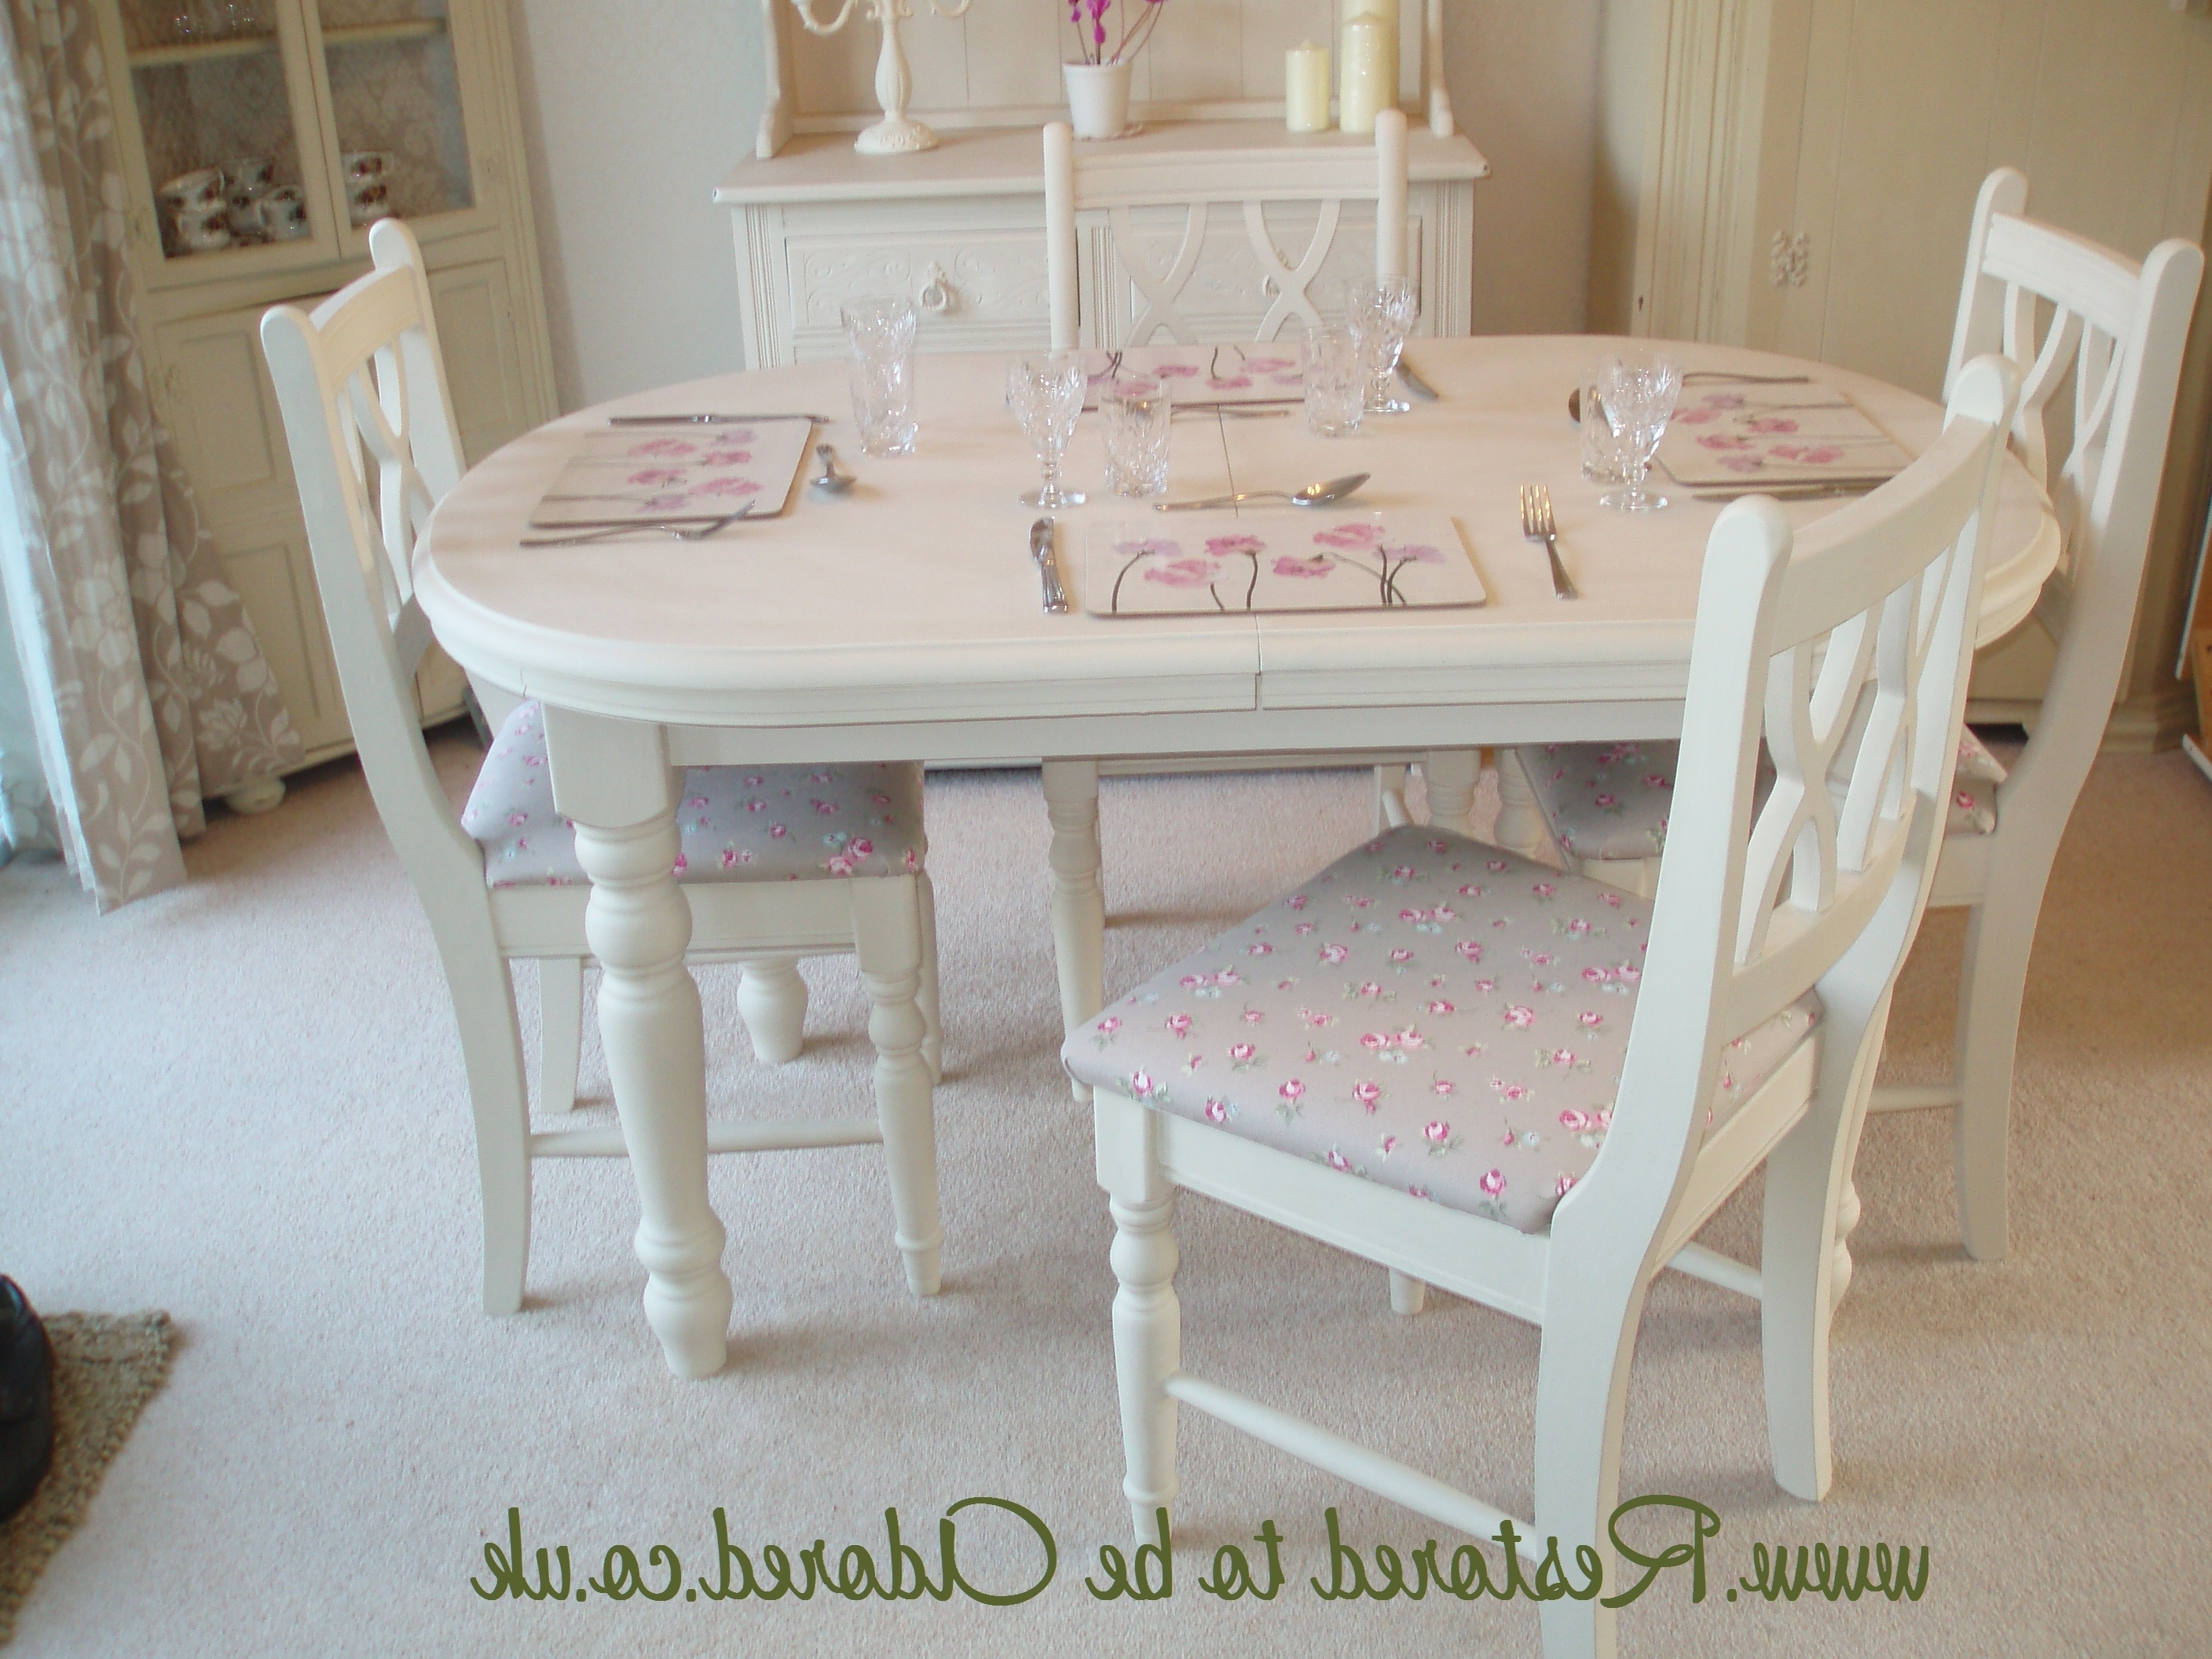 Widely Used Shabby Chic Dining Table And Chairs Set – Castrophotos Regarding Shabby Chic Cream Dining Tables And Chairs (View 25 of 25)